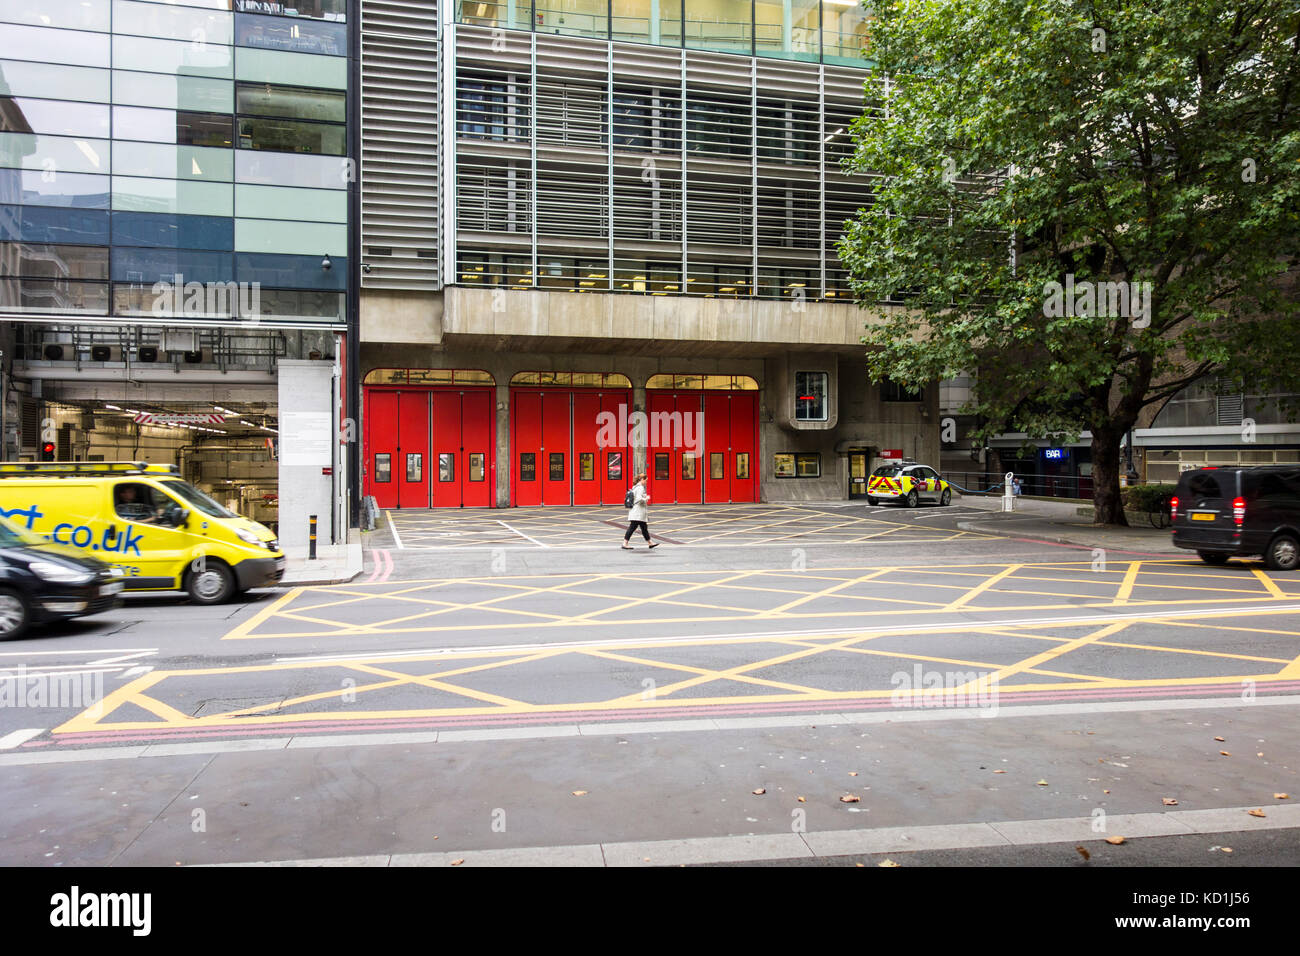 Exterior of Dowgate Fire Station, Upper Thames Street, City of London - Stock Image